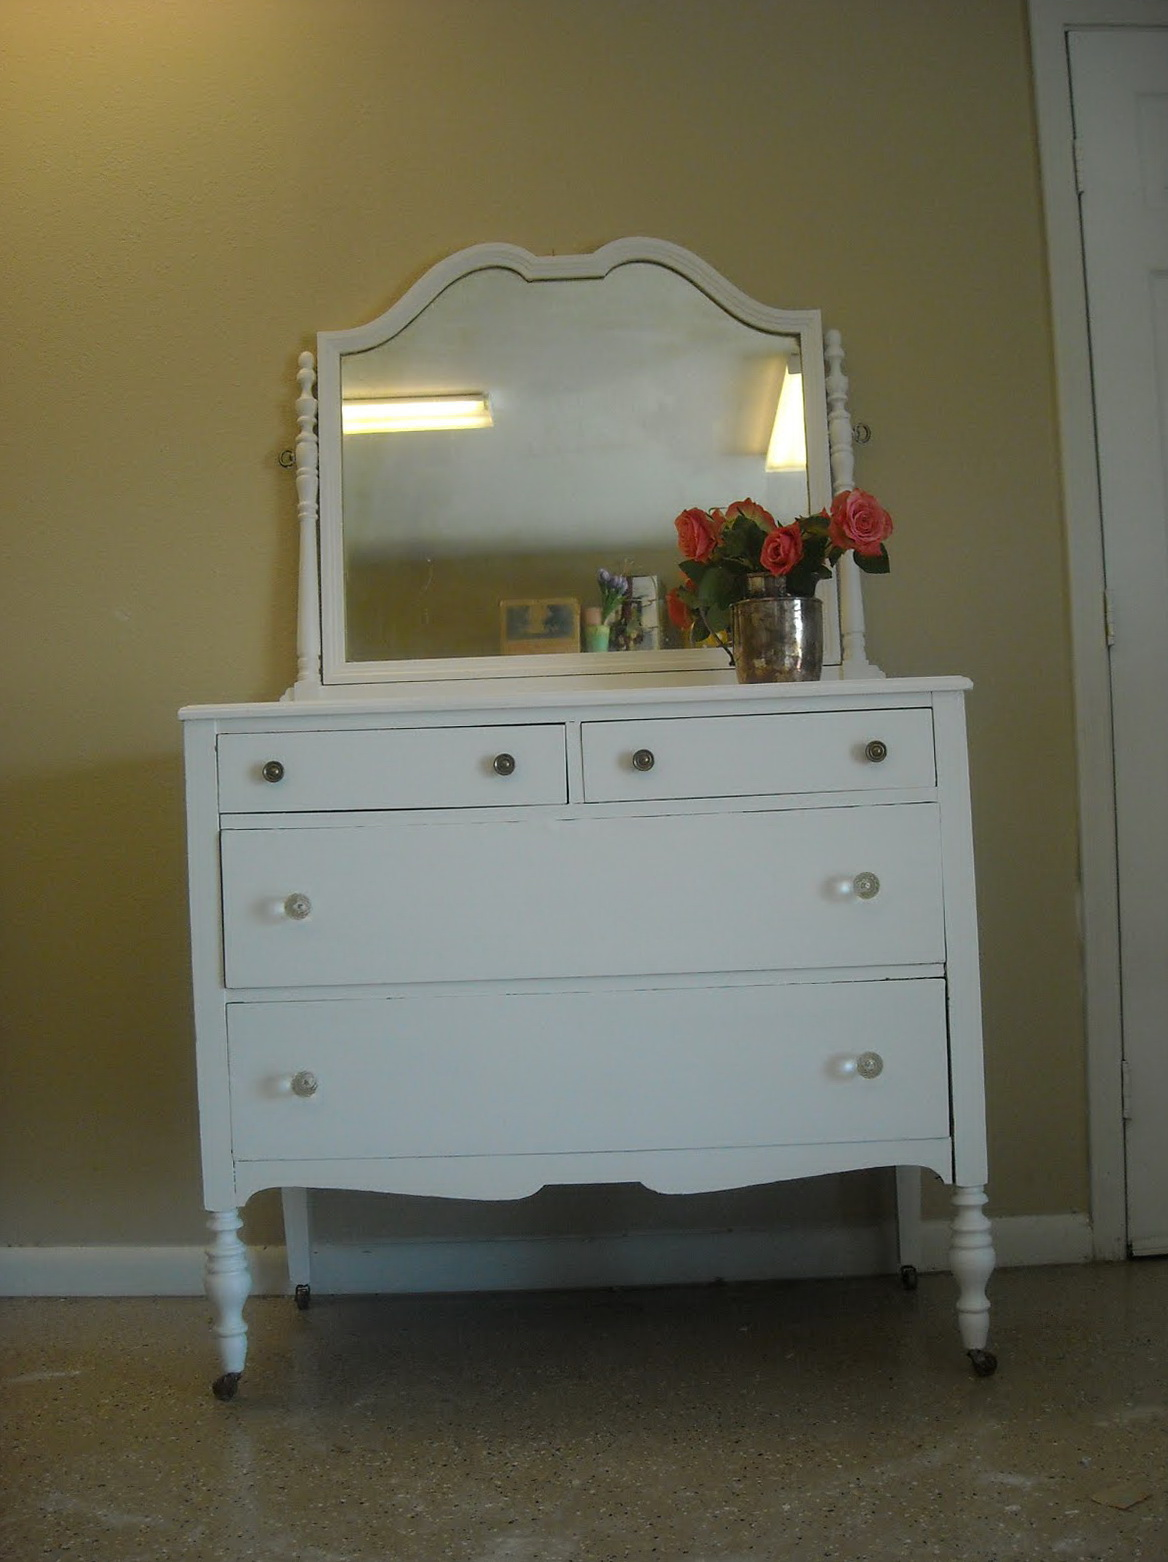 Permalink to Antique White Dresser With Mirror